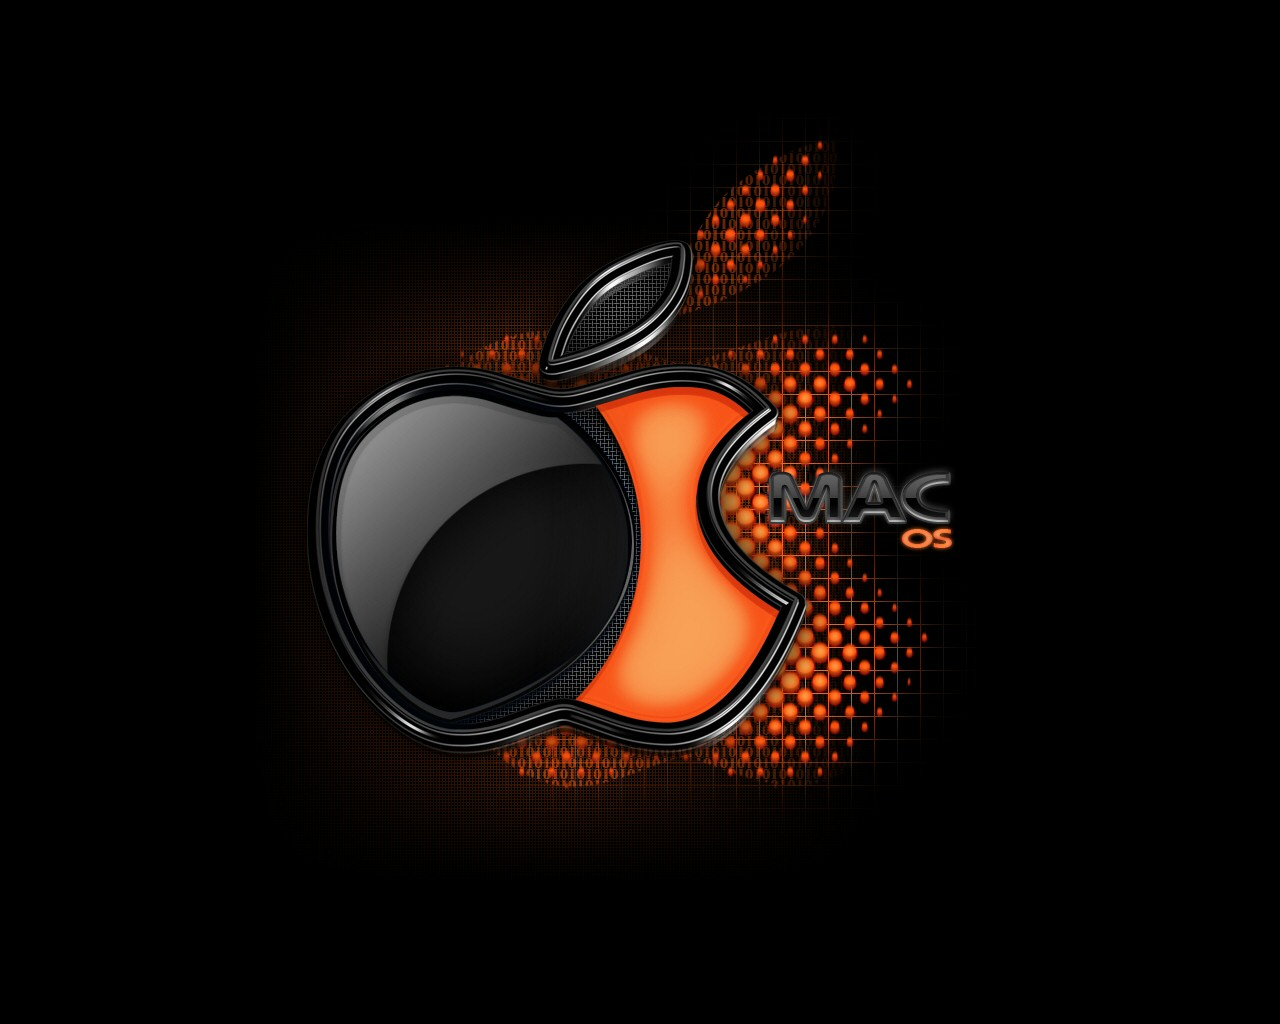 Cool Wallpapers Pics Cool Wallpapers For Mac 1280x1024